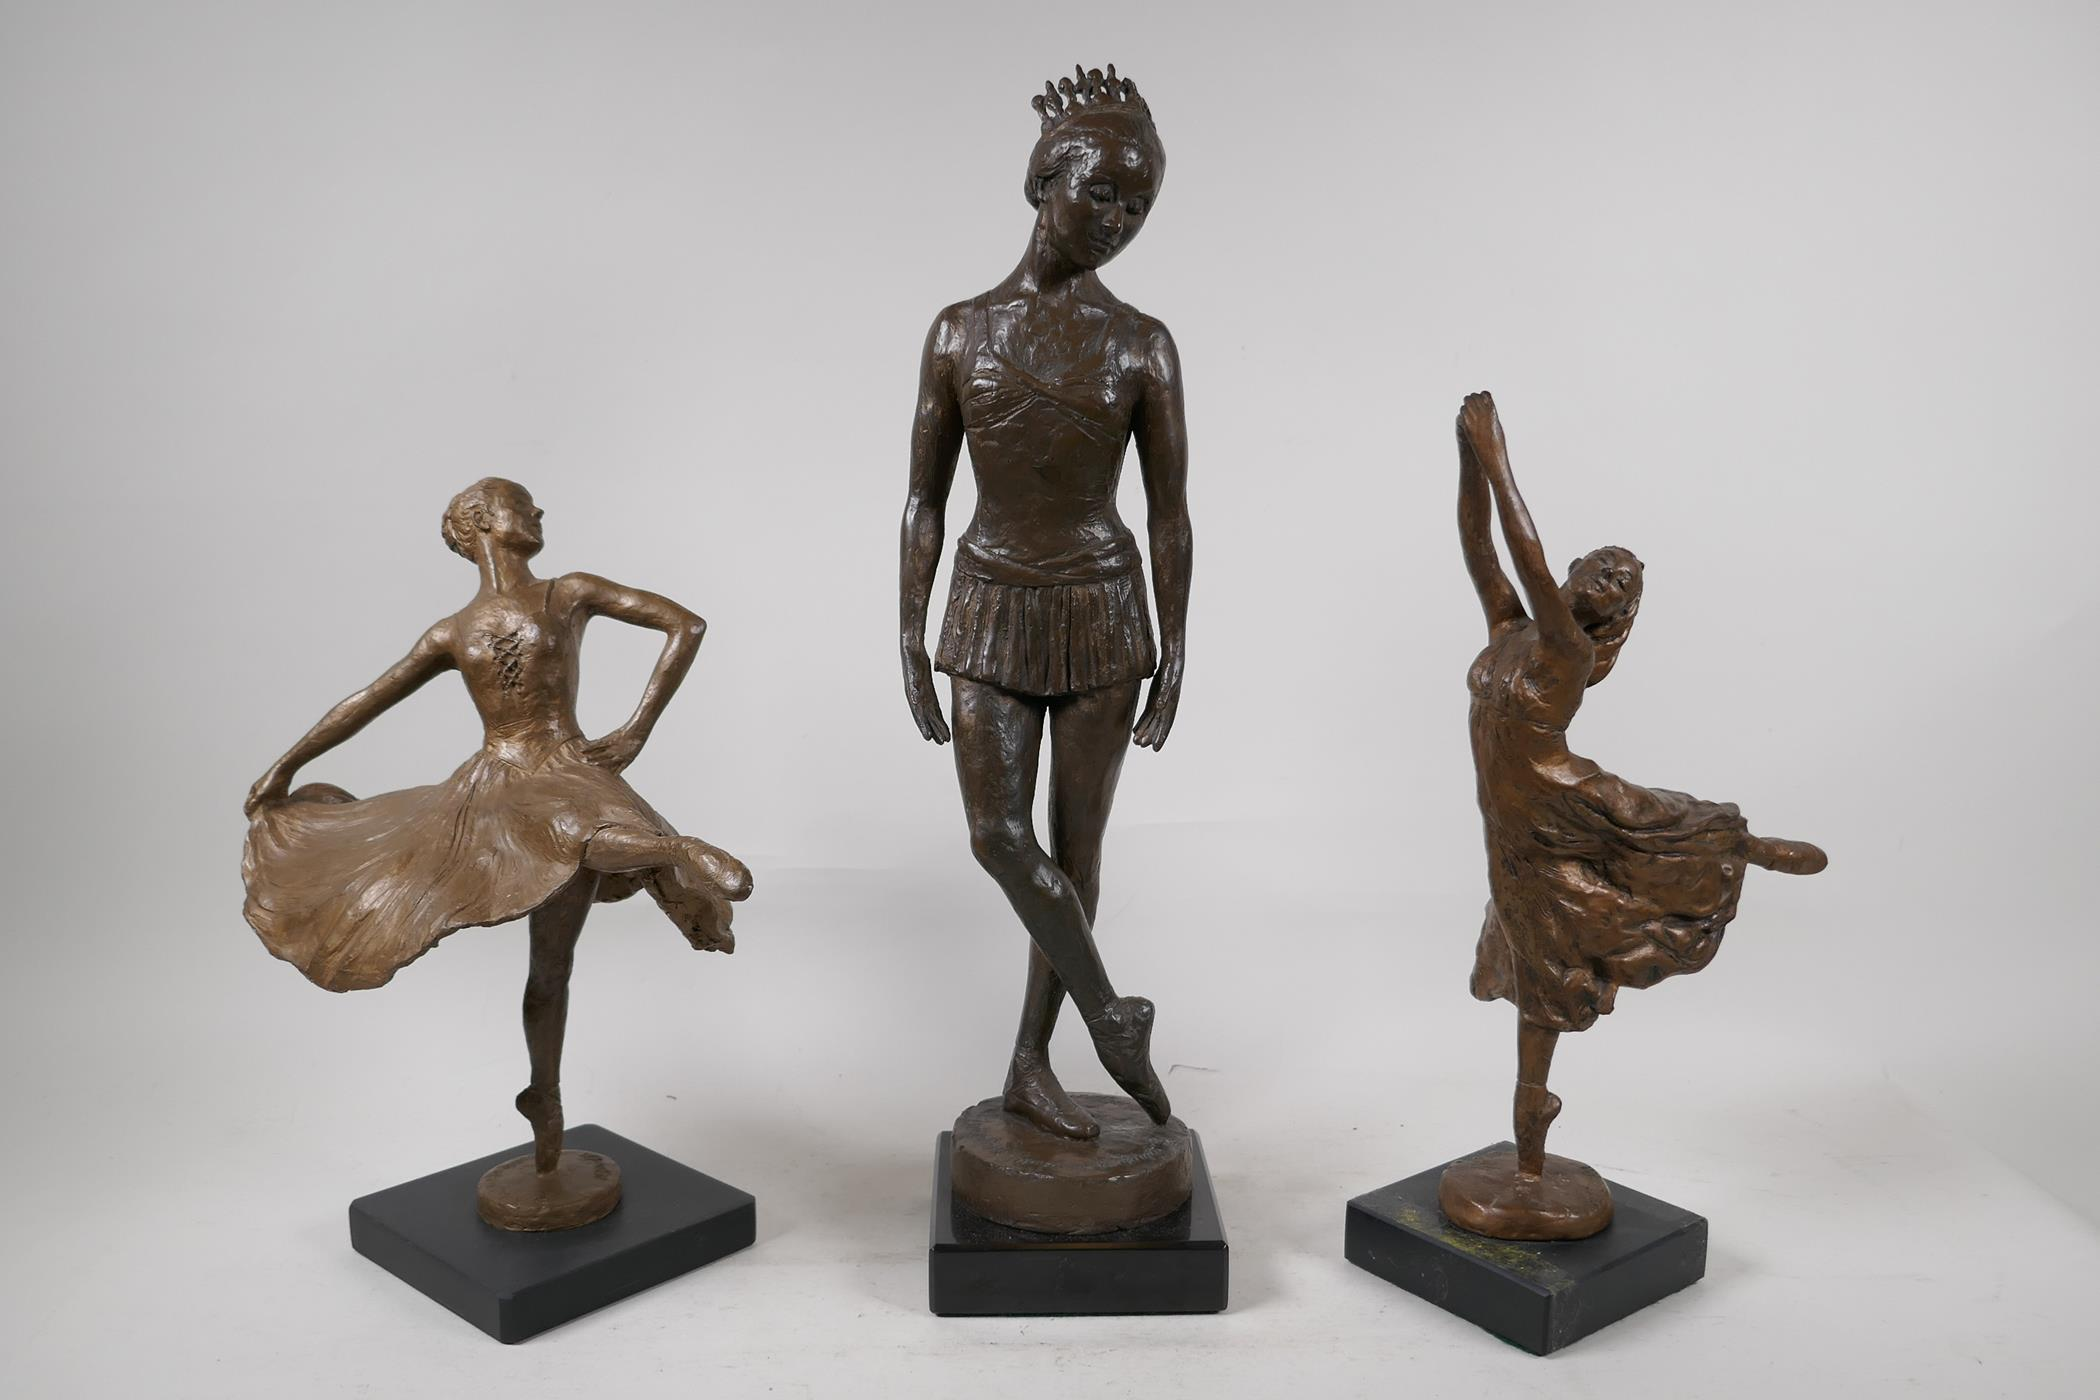 Nathan David, three limited edition bronzed composition figures of ballet dancers, Spirit of the